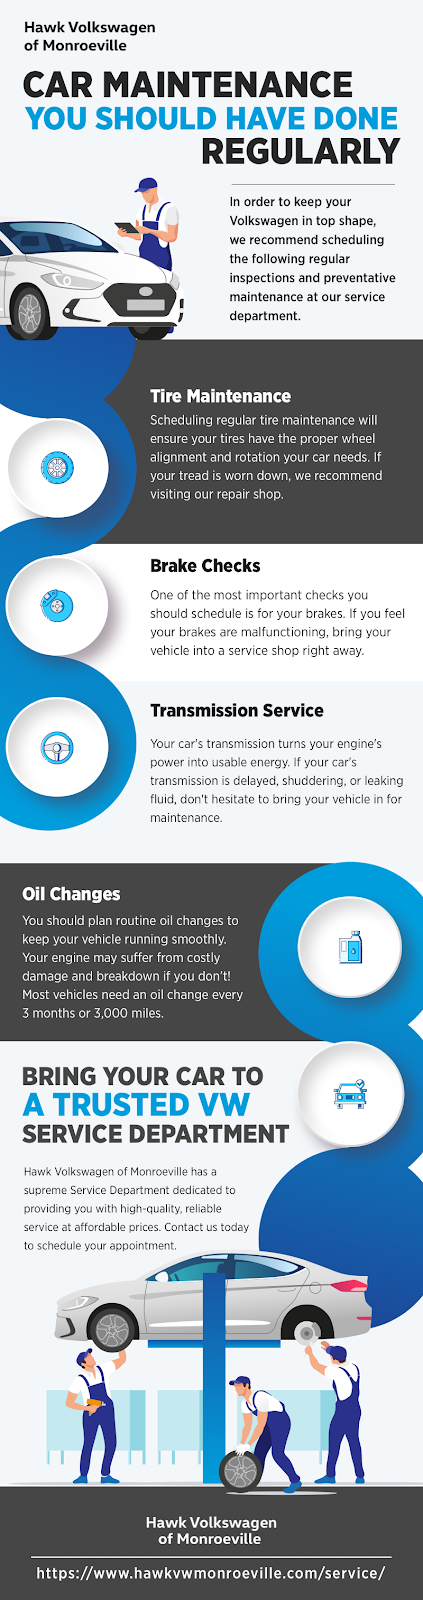 Car Maintenance You Sould Have Done Regularly